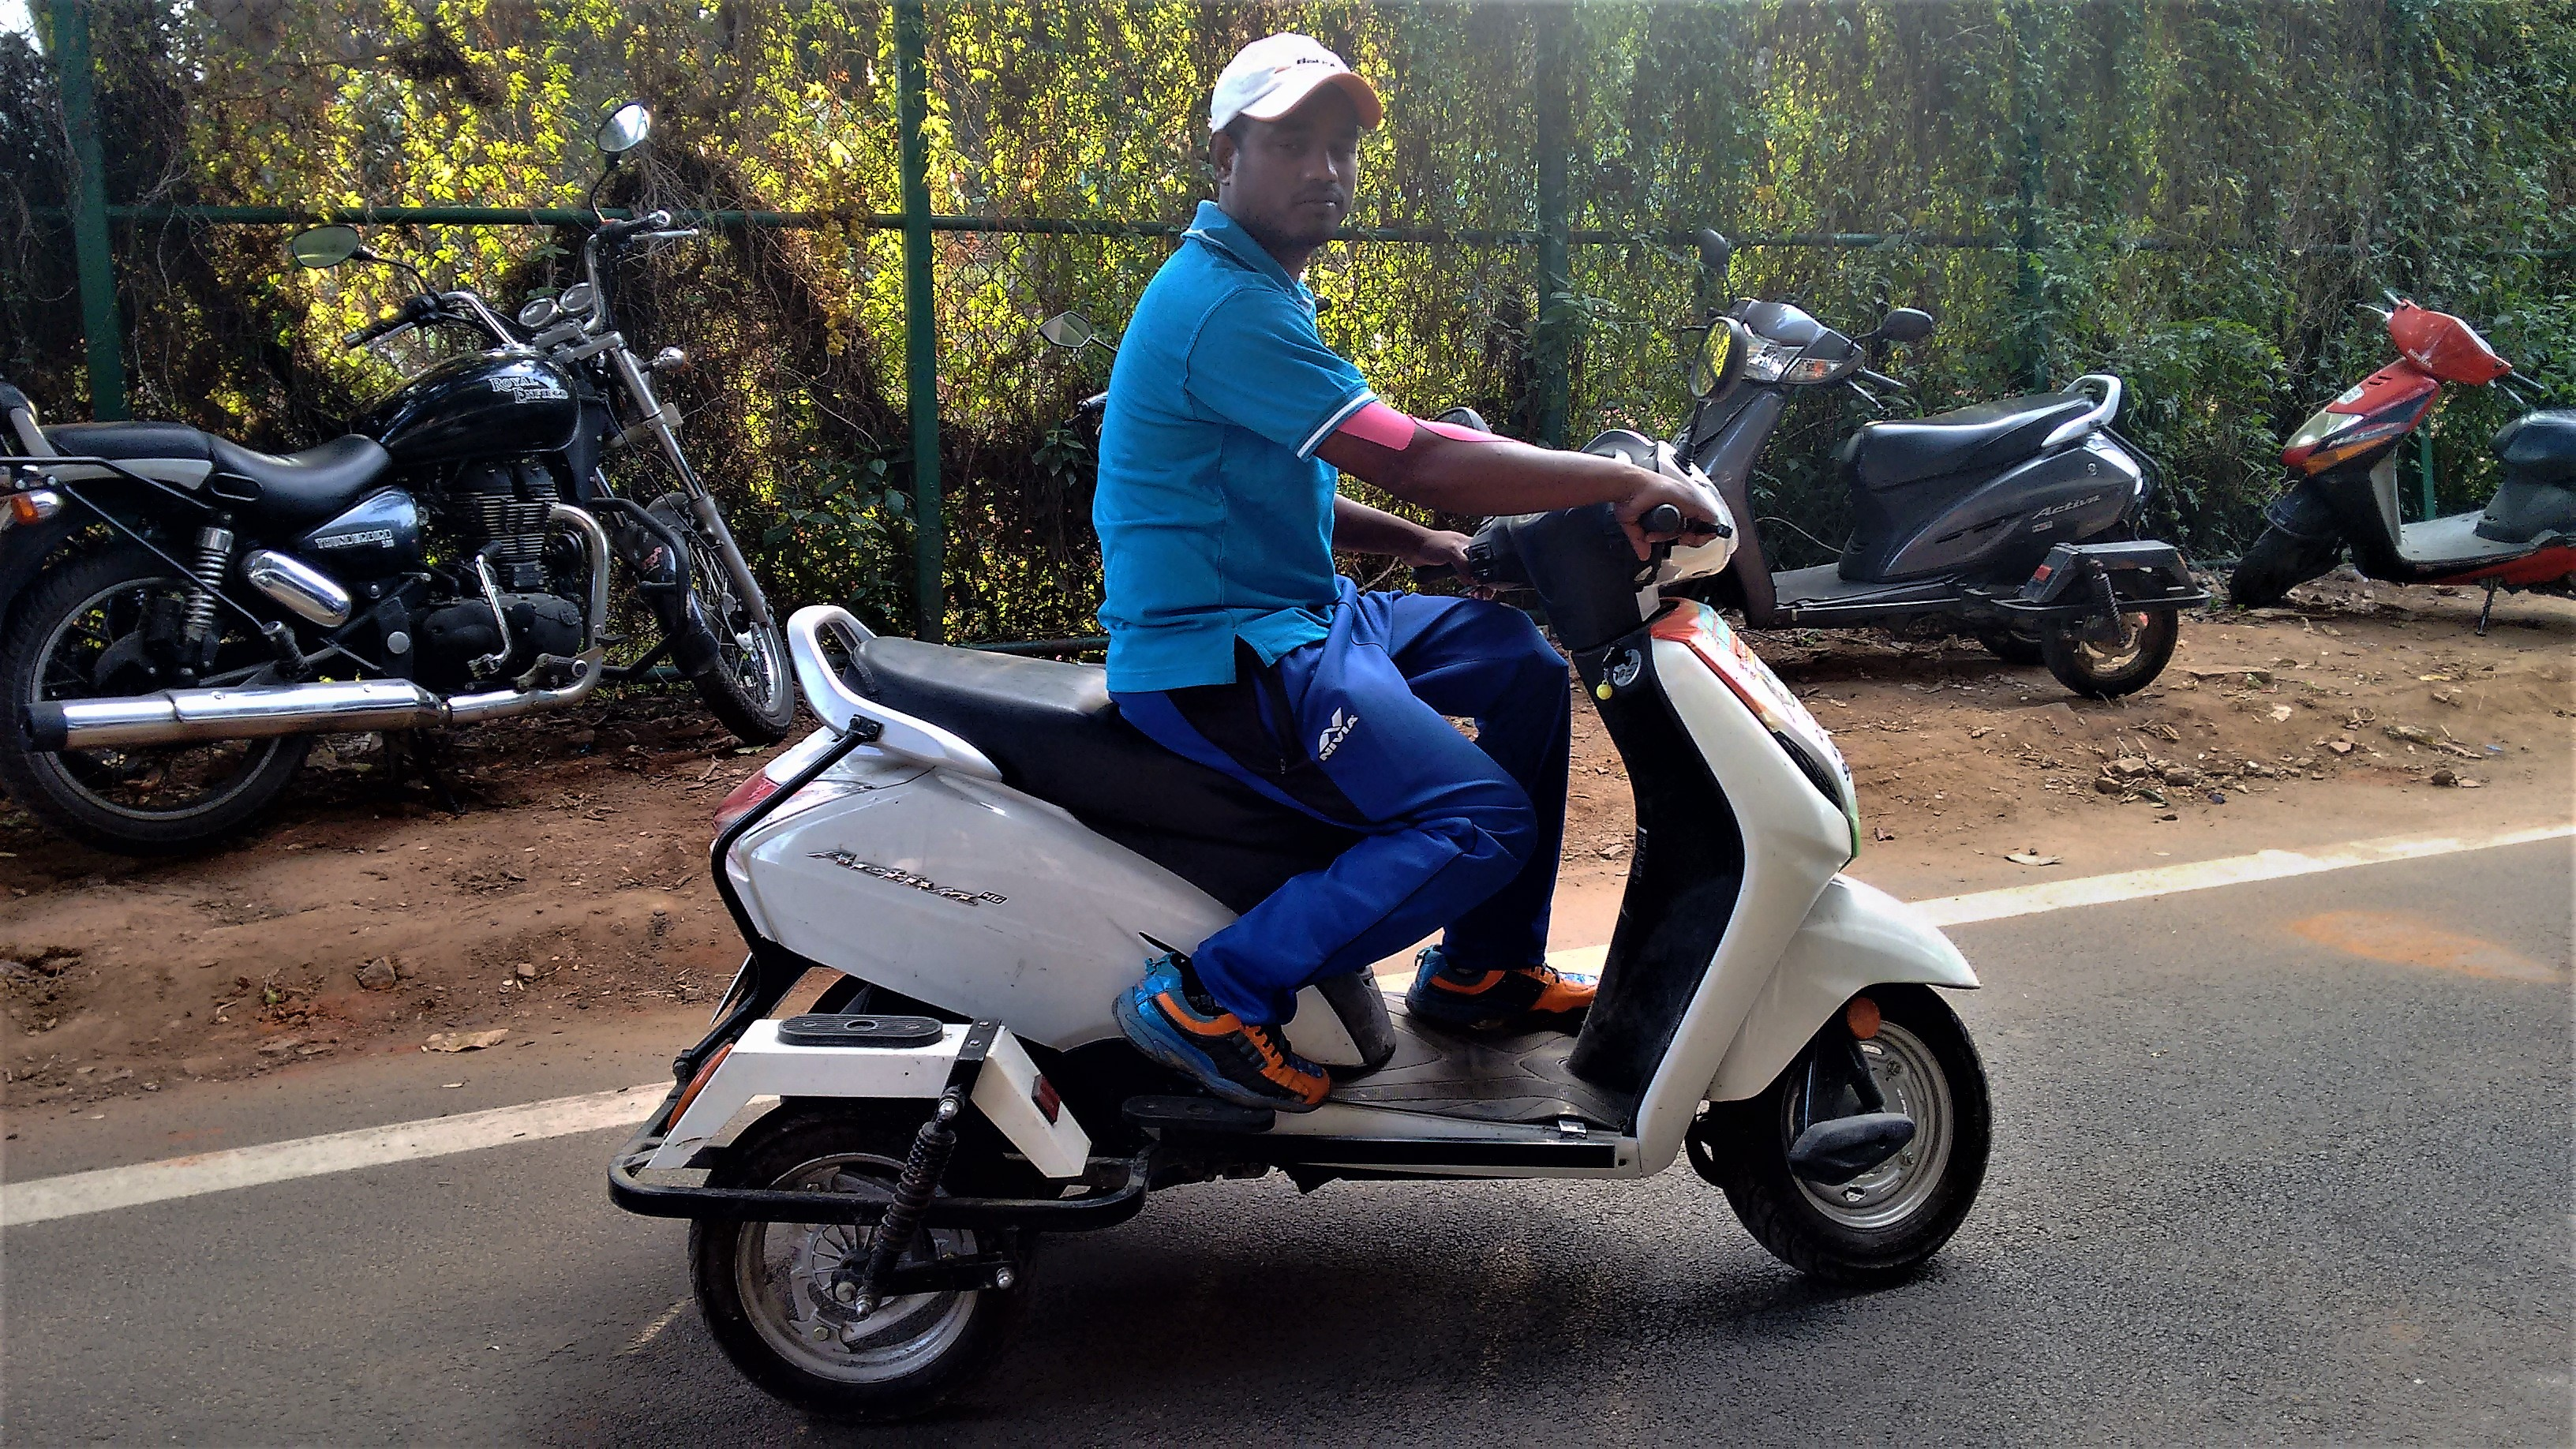 Shekar makes a trip from his home in CKC Nagar to the KSLTA in Cubbon Park with his four-wheeled Honda Activa 4G everyday.